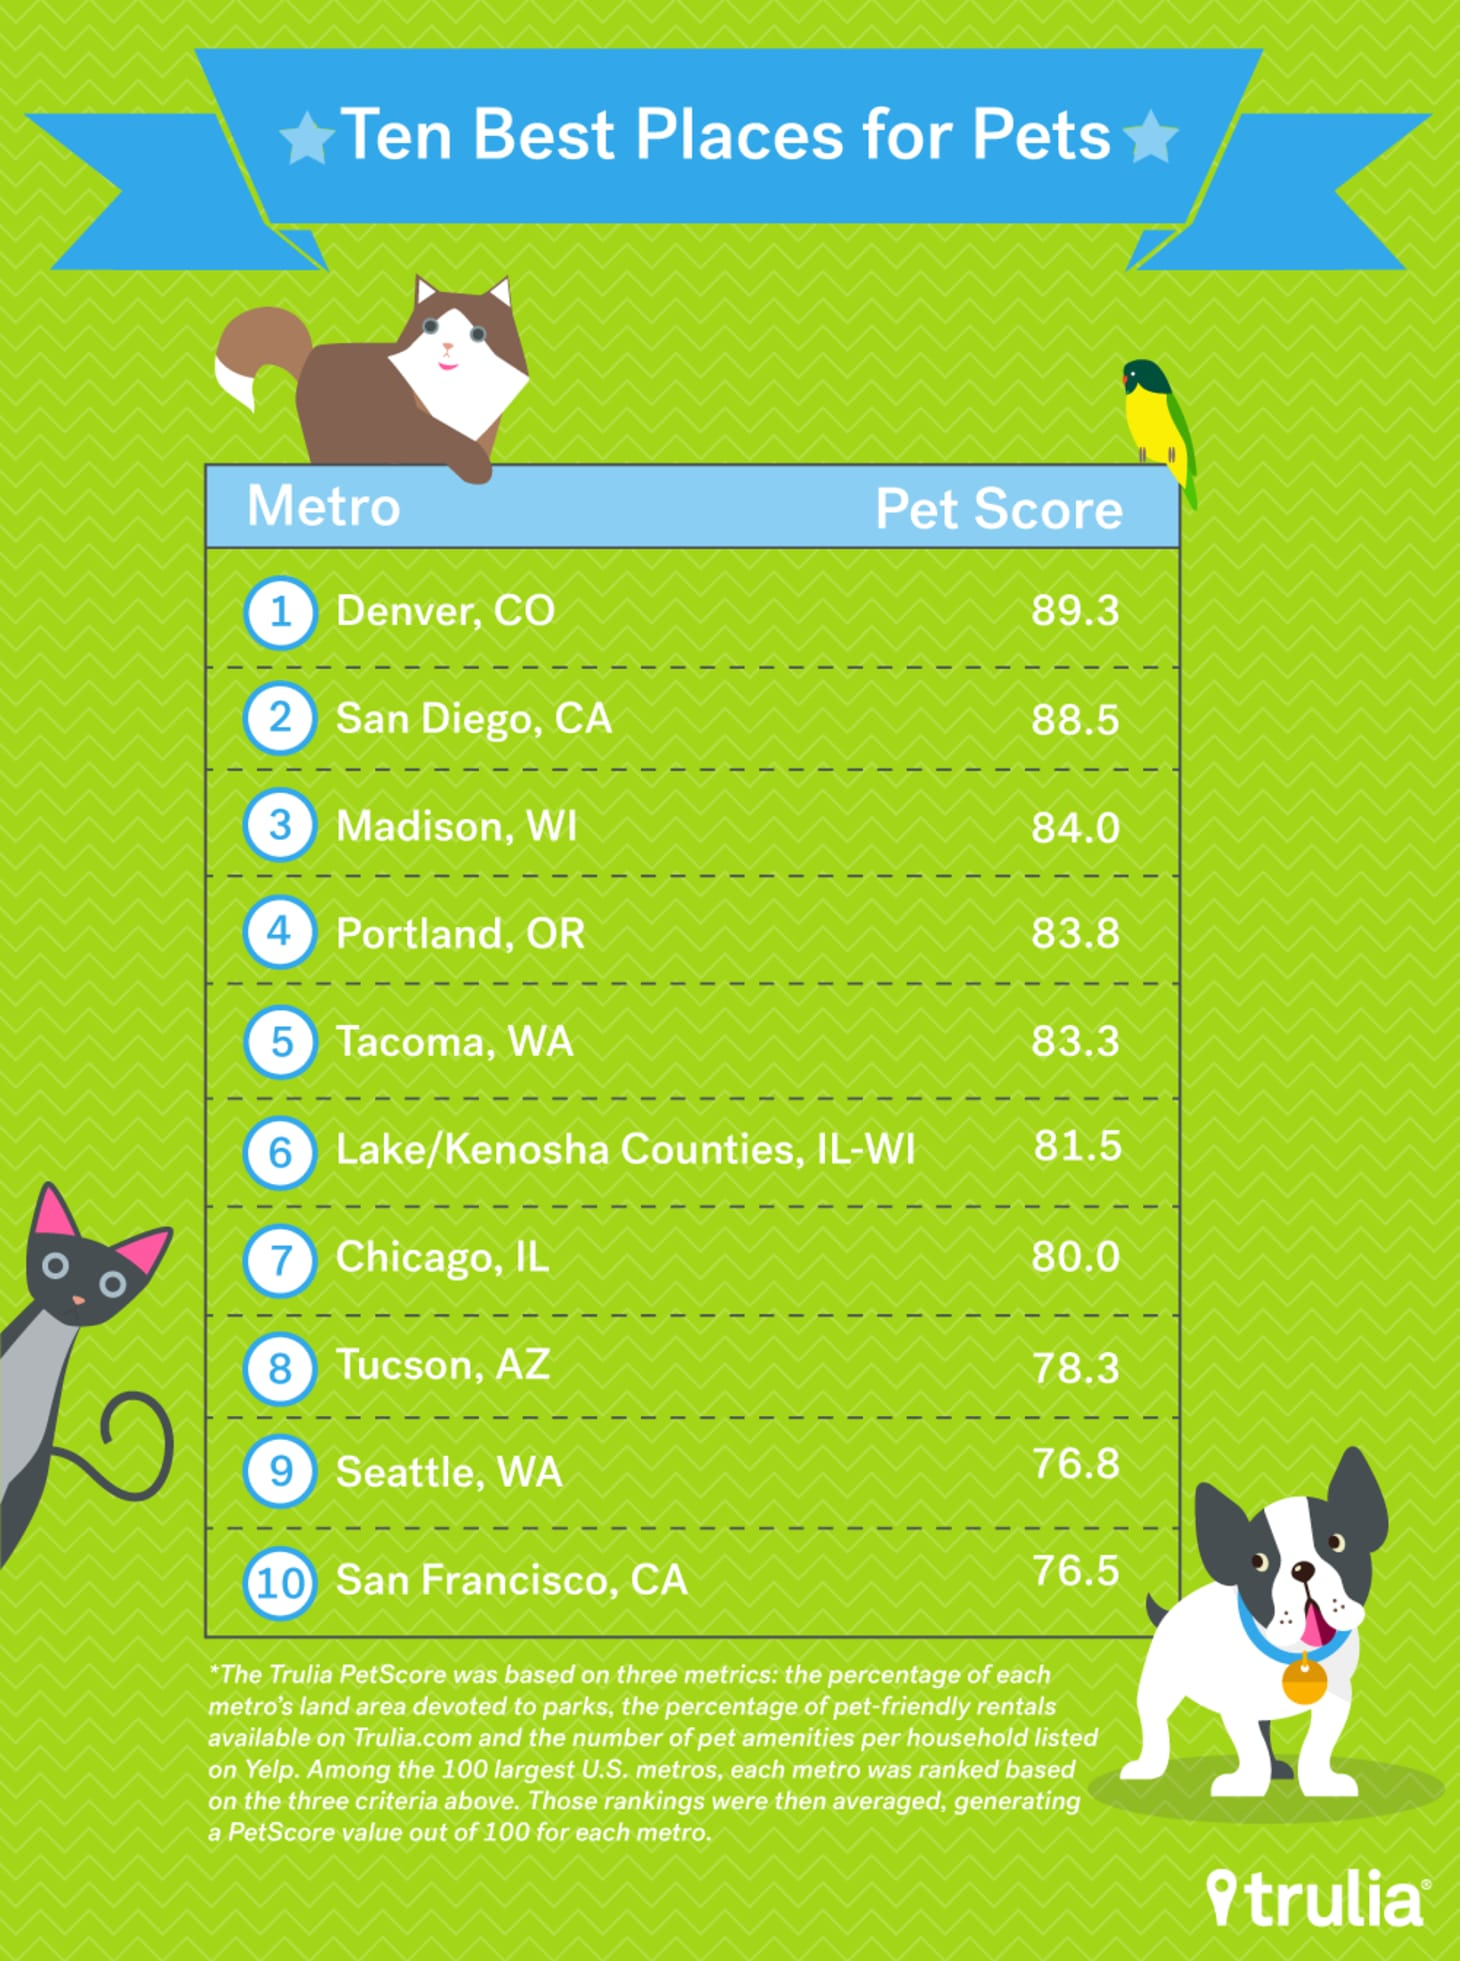 Trulia's New Property Listings for Pets: The Top 10 Places